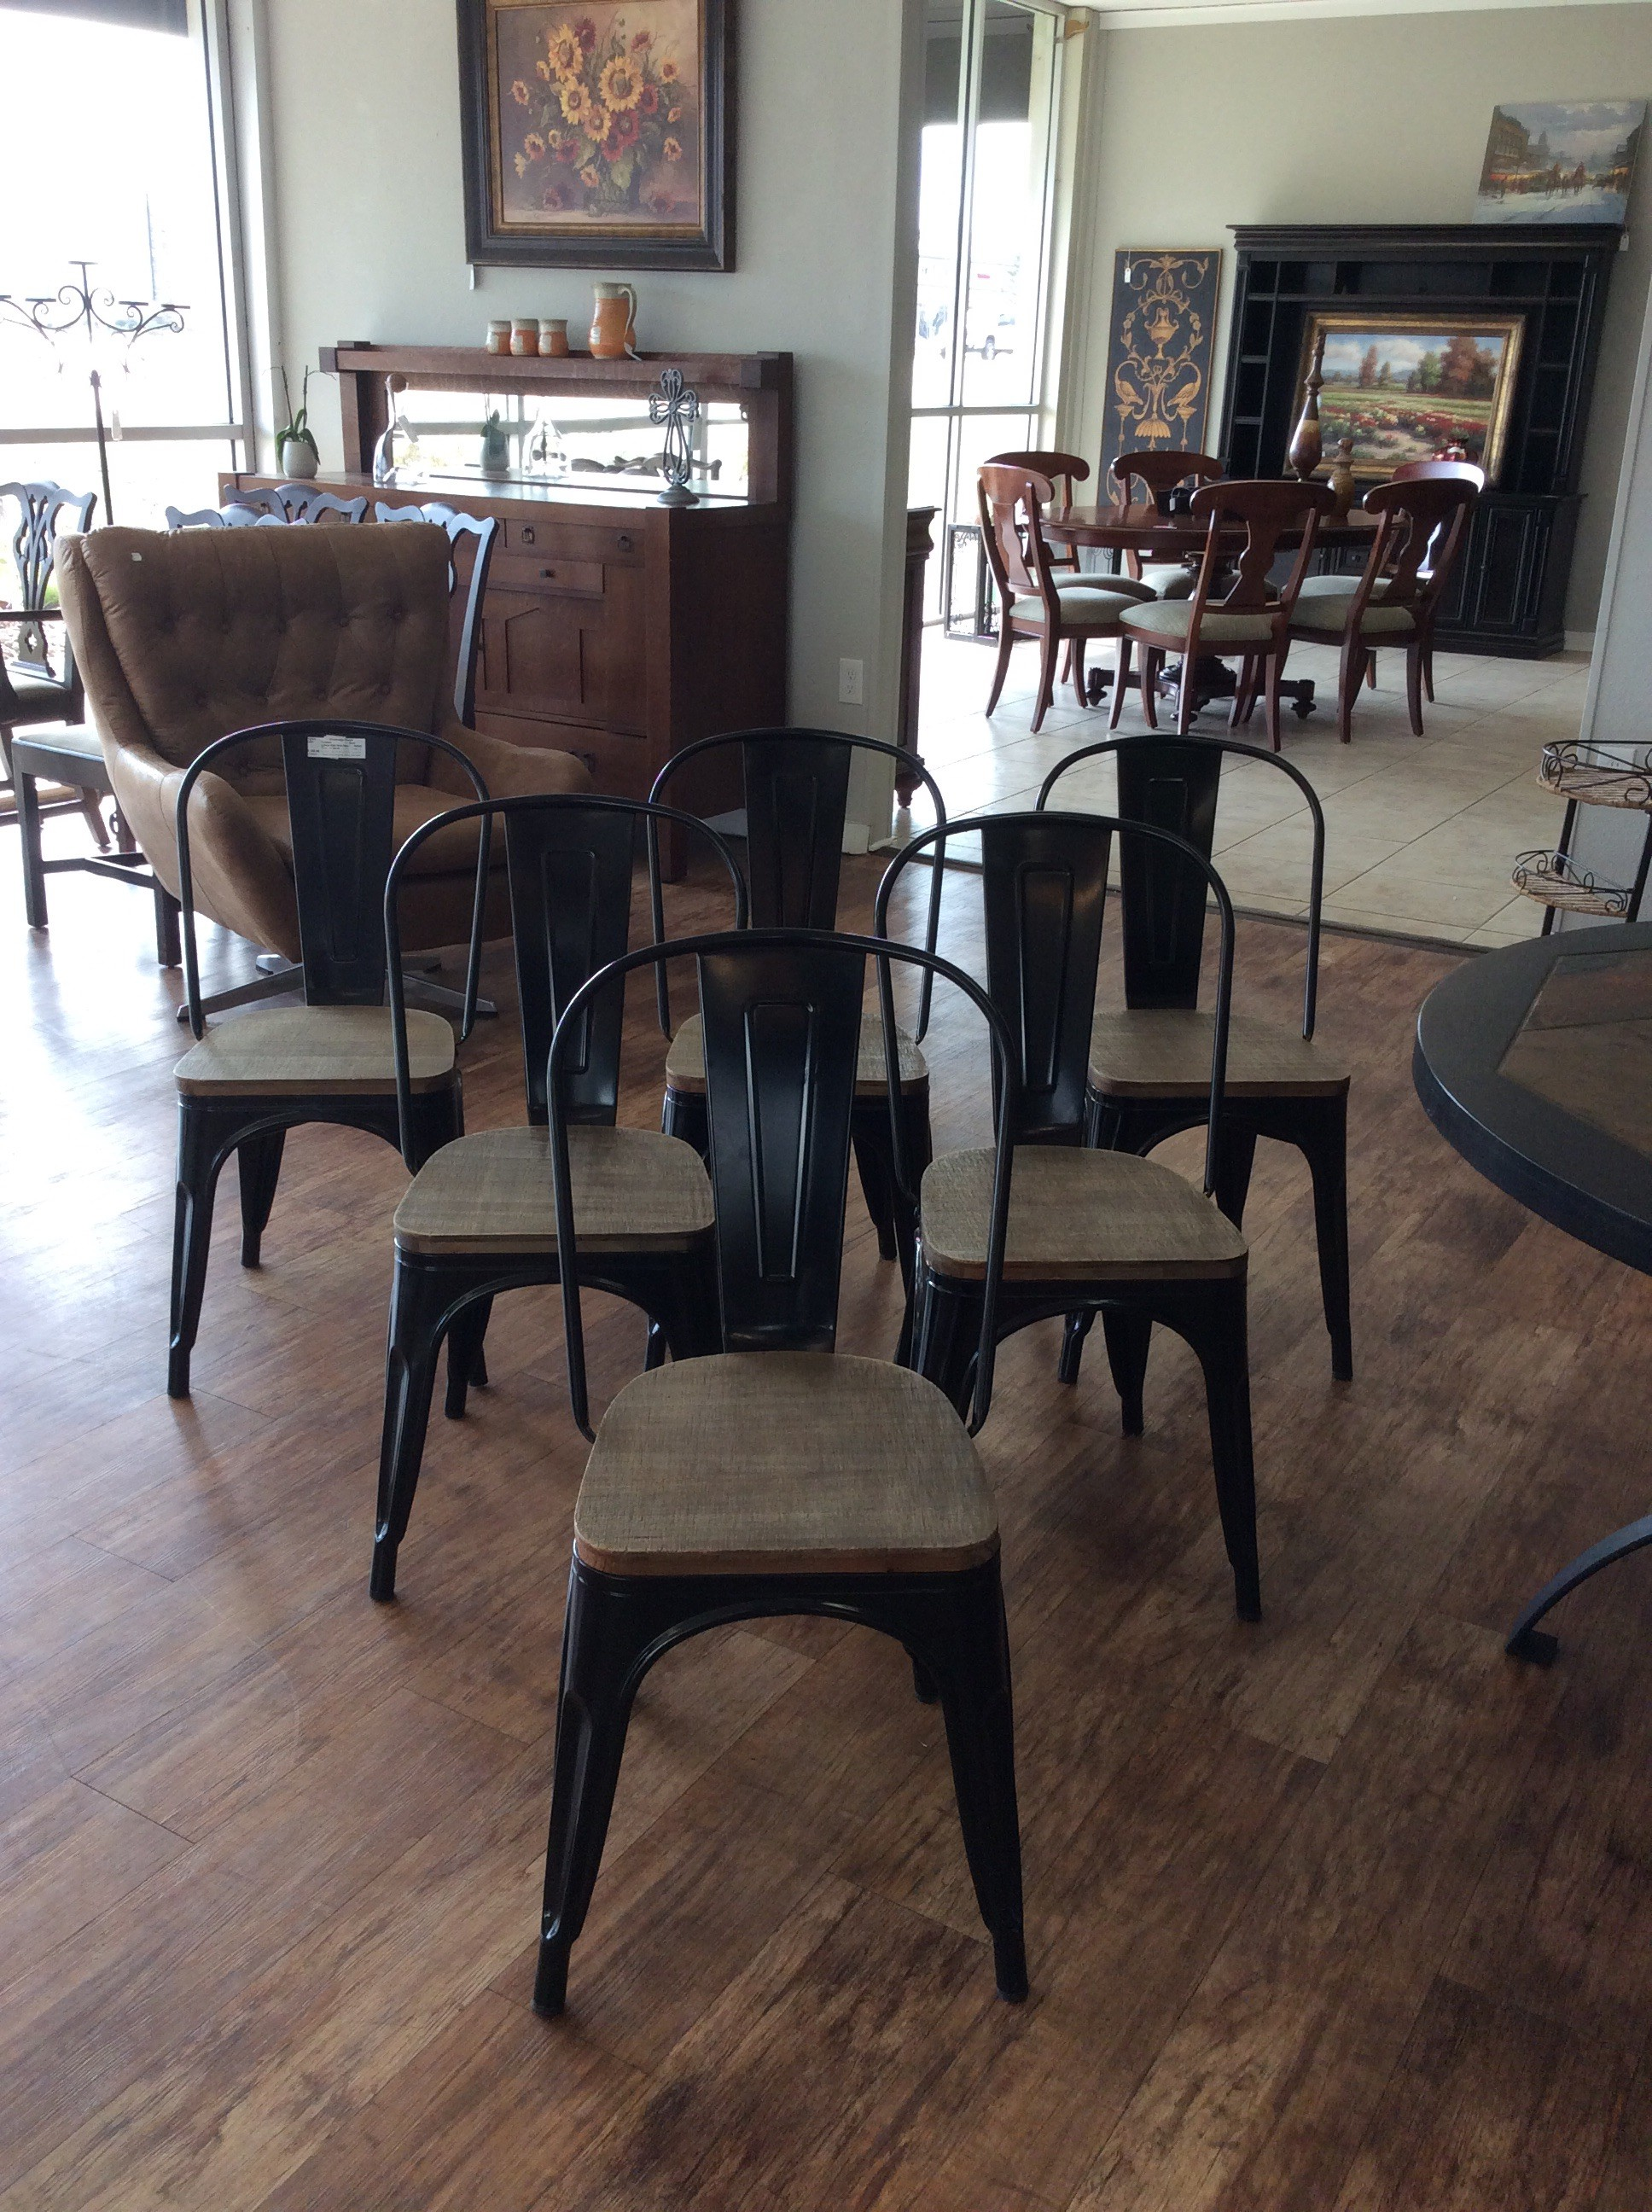 This is a great set of  metal slat back side chairs! They are metal dining chairs with solid elm wood seats - very durable. They're functional and convenient too as they can be stacked to save space and easily carried. This set is suitable for both the indoor and outdoor environment.